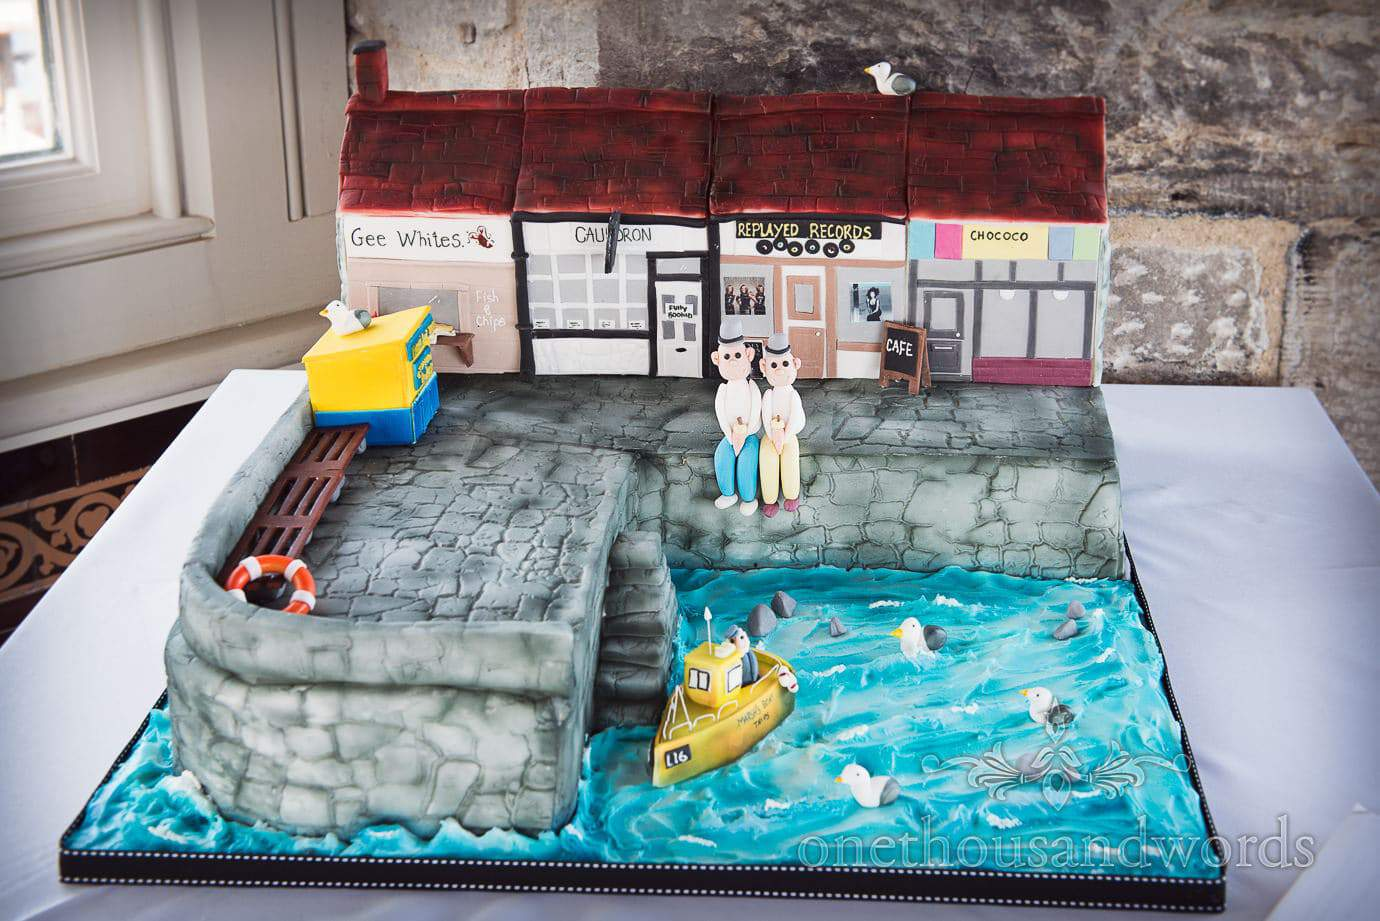 Amazing wedding cake with gay grooms in Swanage local scene by the seaside